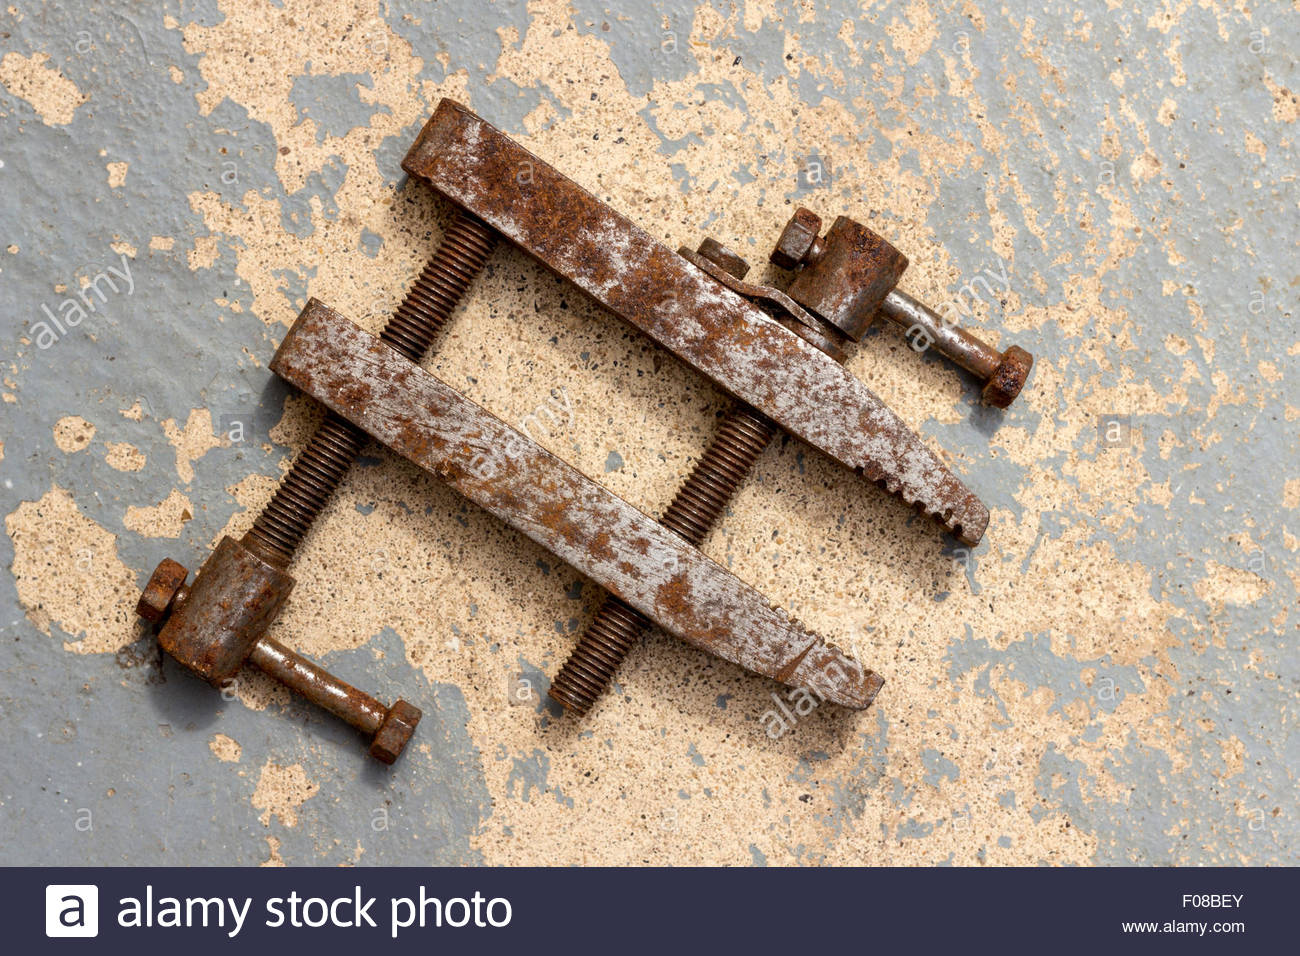 Old and worn adjustable clamp - Stock Image